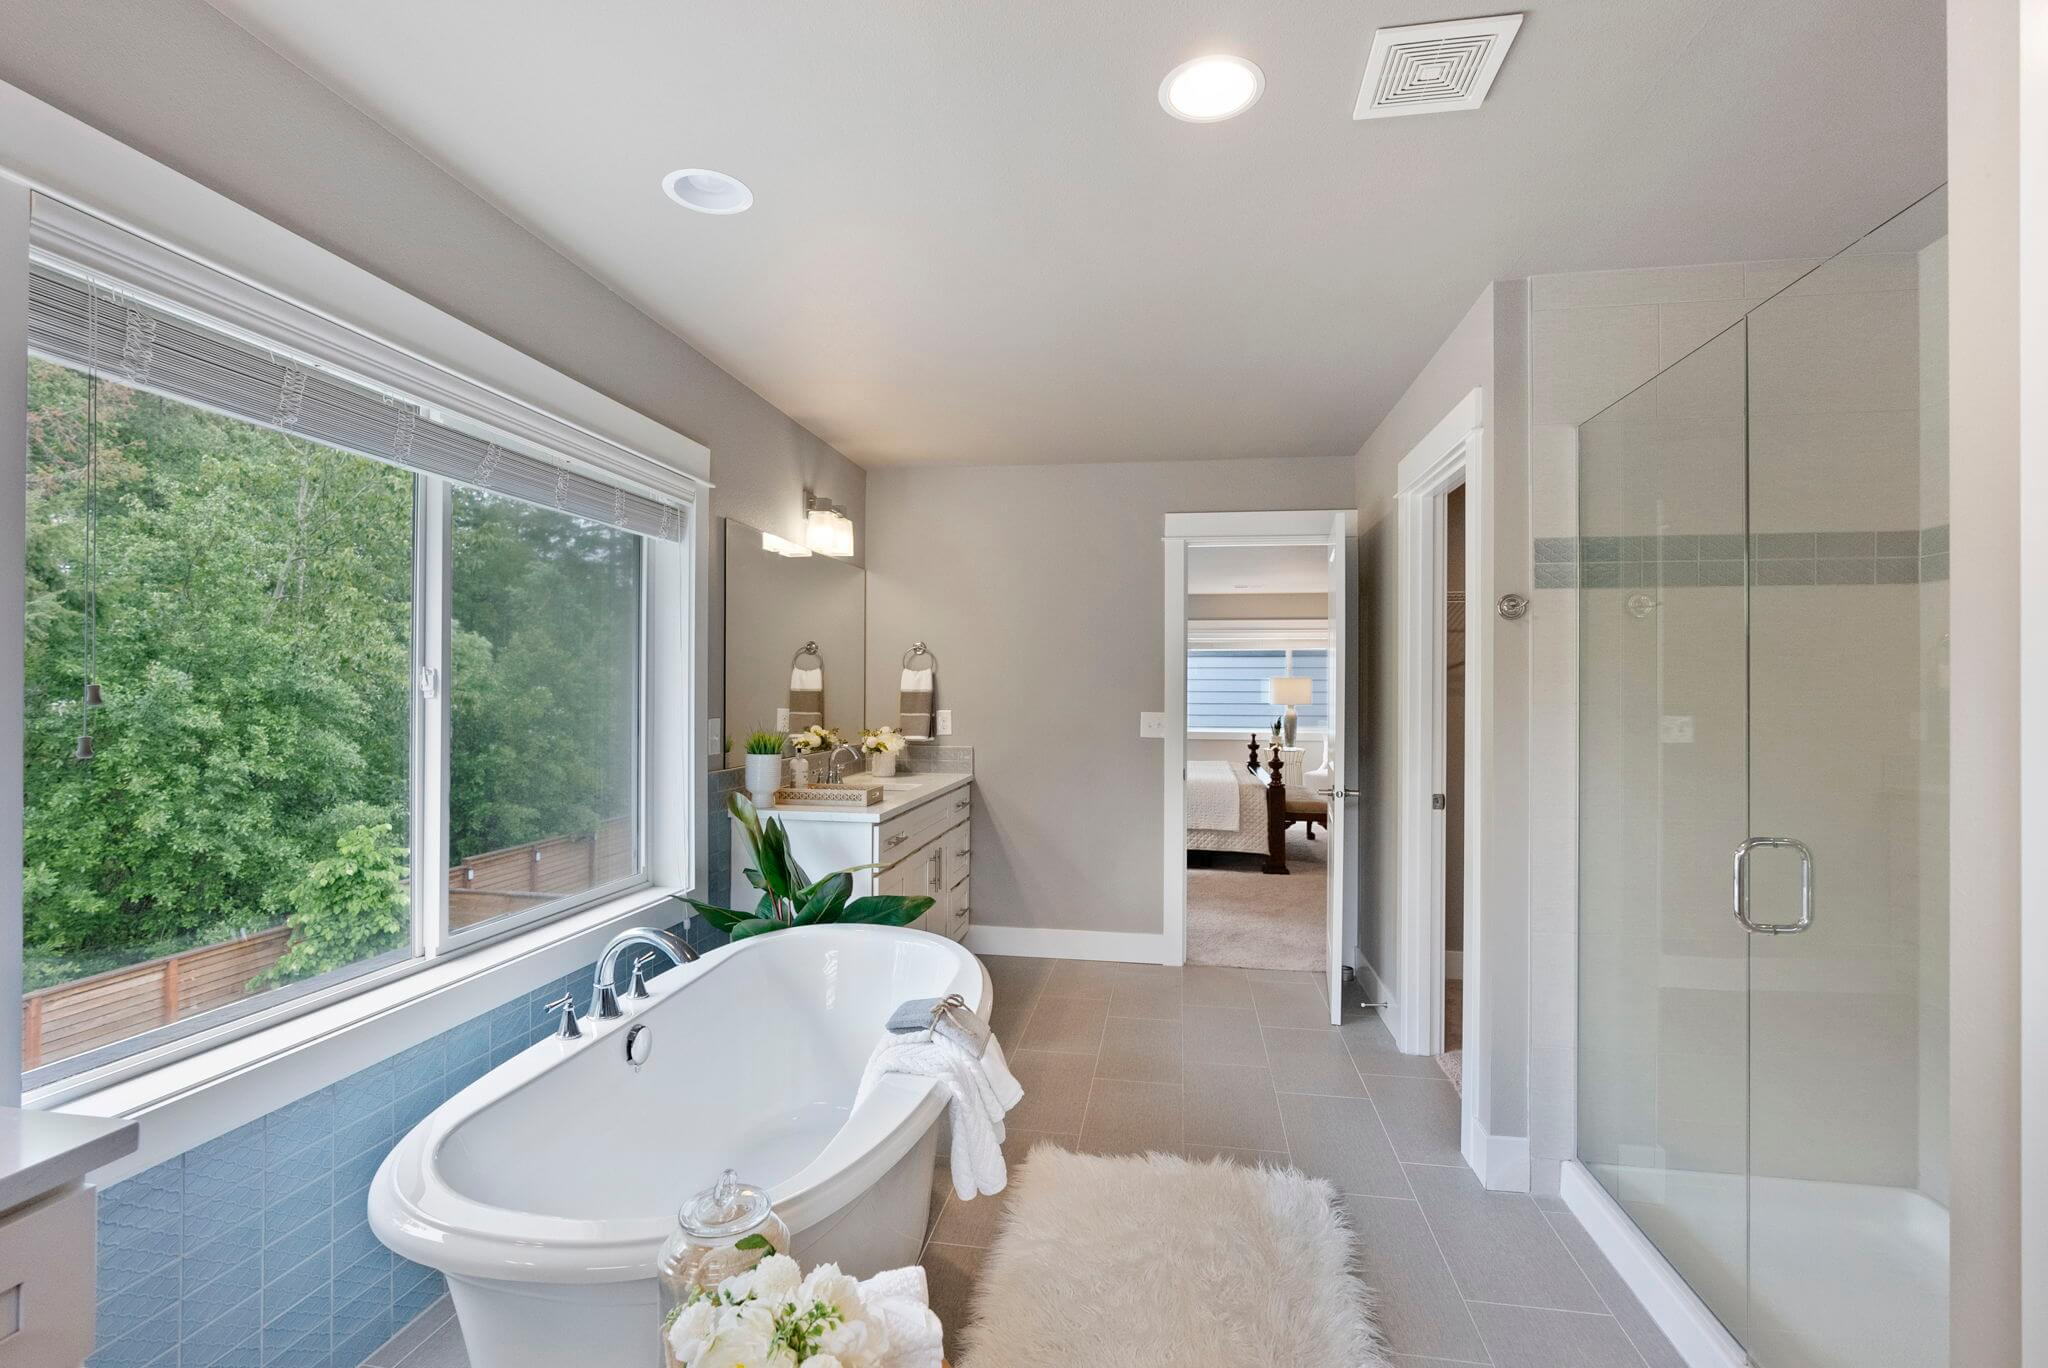 En suite primary bathroom with separate tub and shower